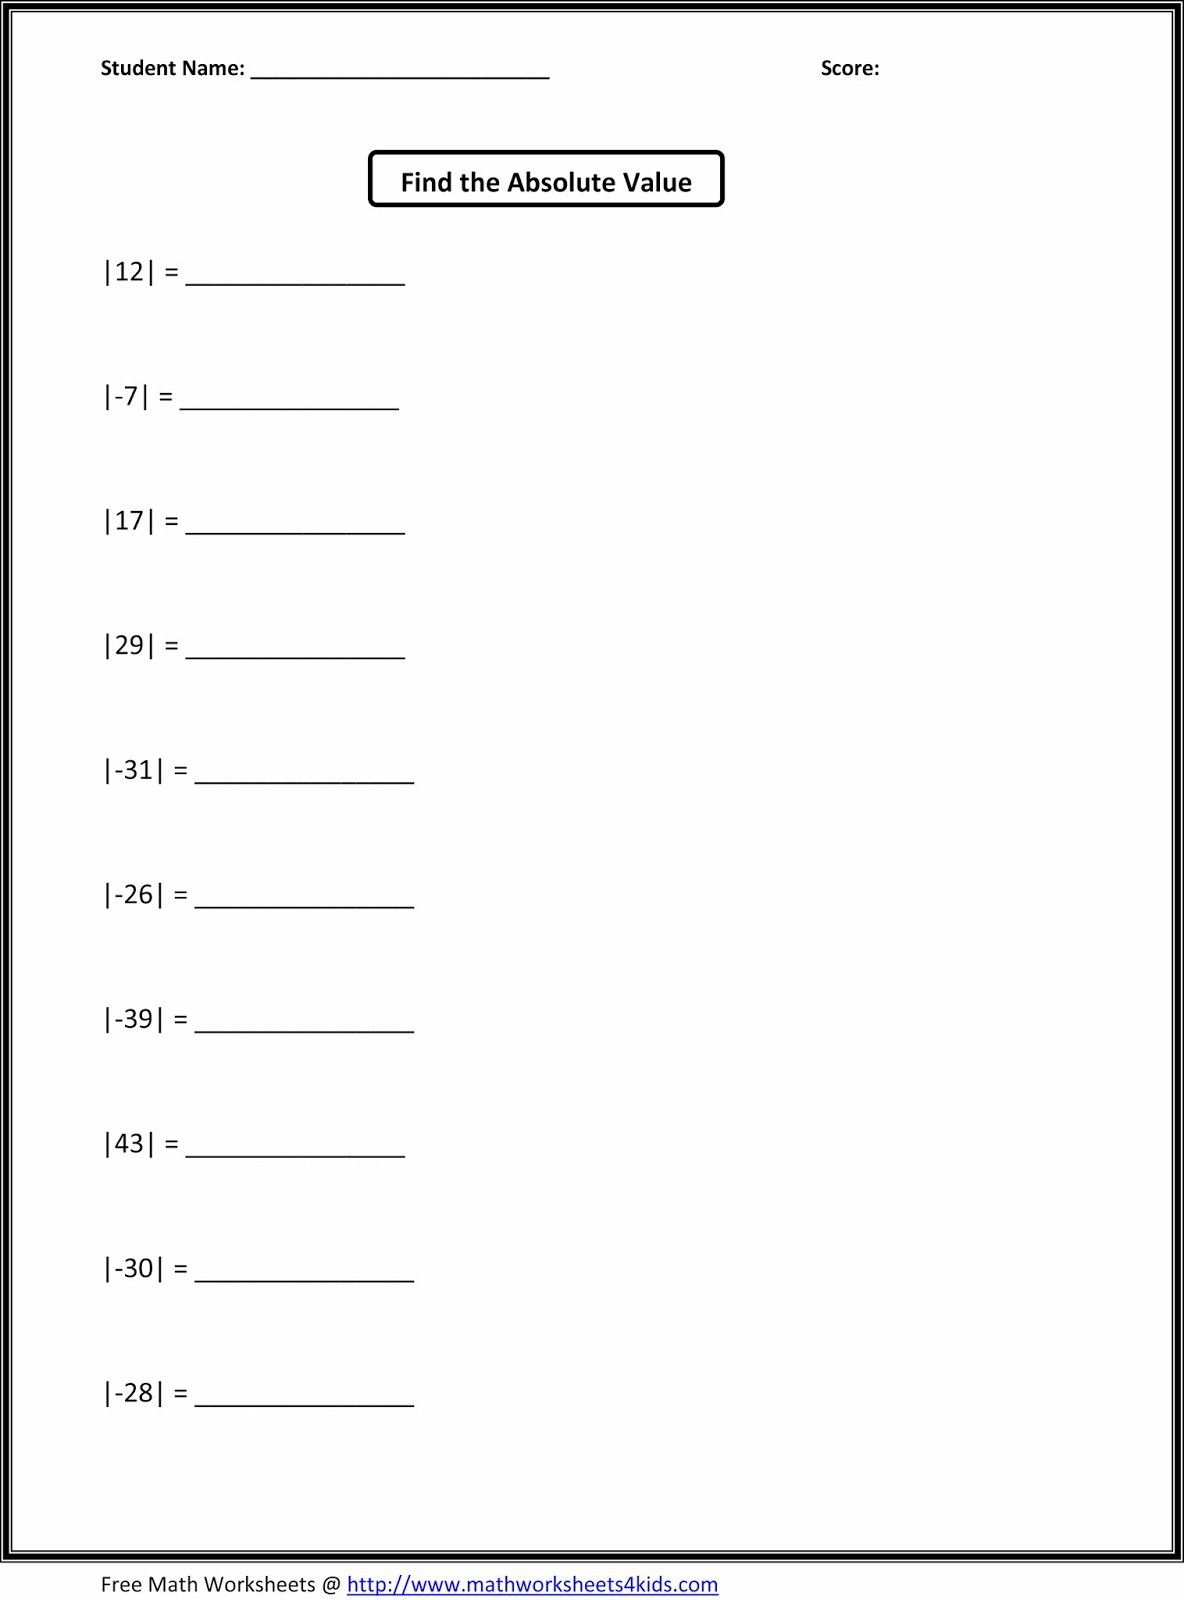 5 Free Math Worksheets Second Grade 2 Word Problems Time 5